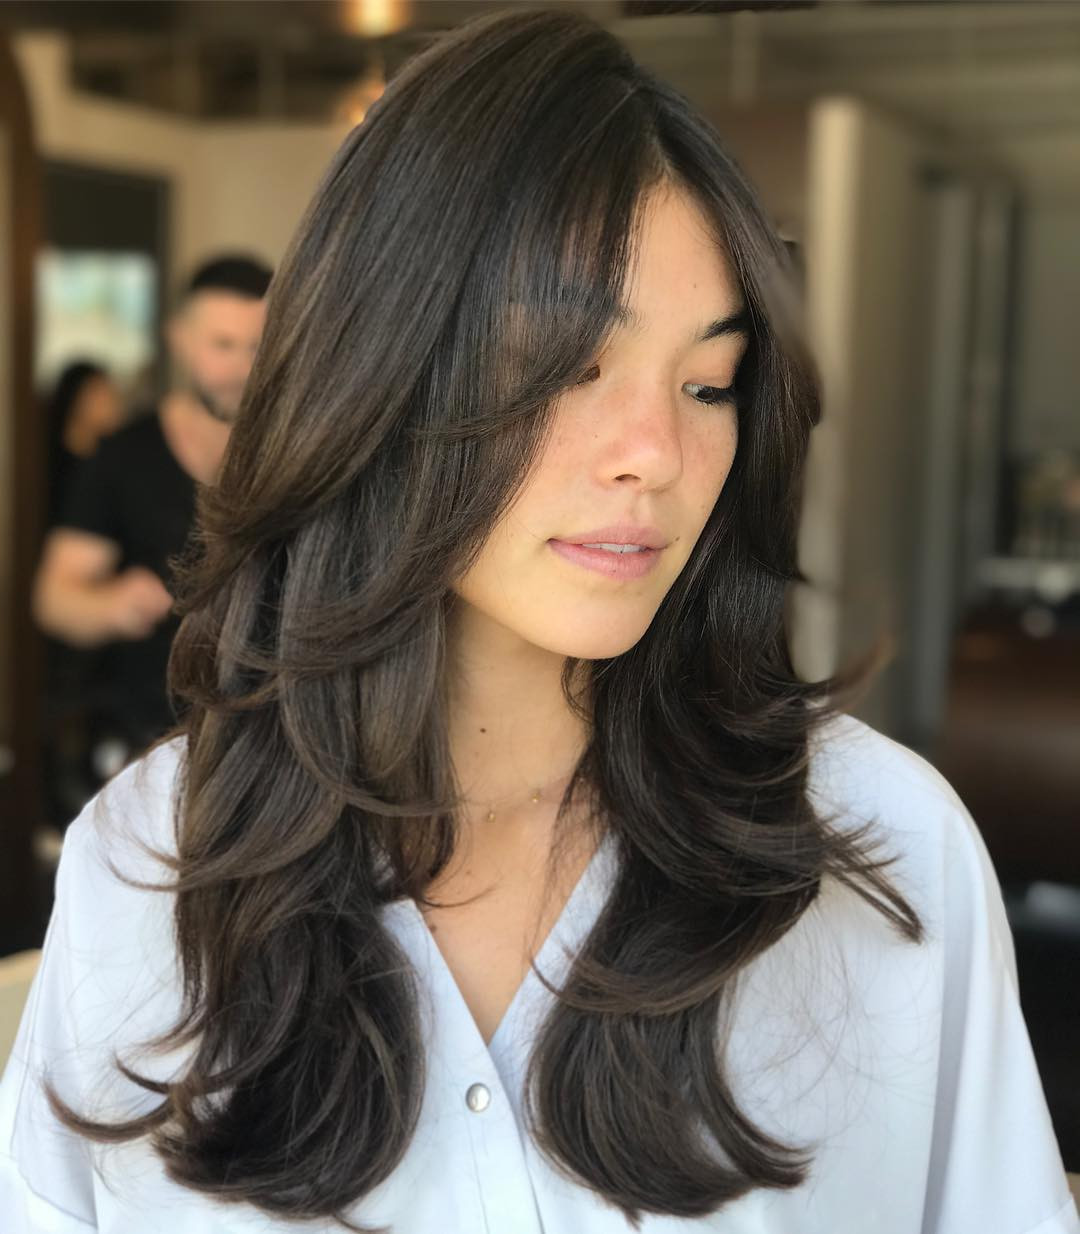 Haircuts With Layers For Long Hair  40 Trendy Hairstyles and Haircuts for Long Layered Hair To